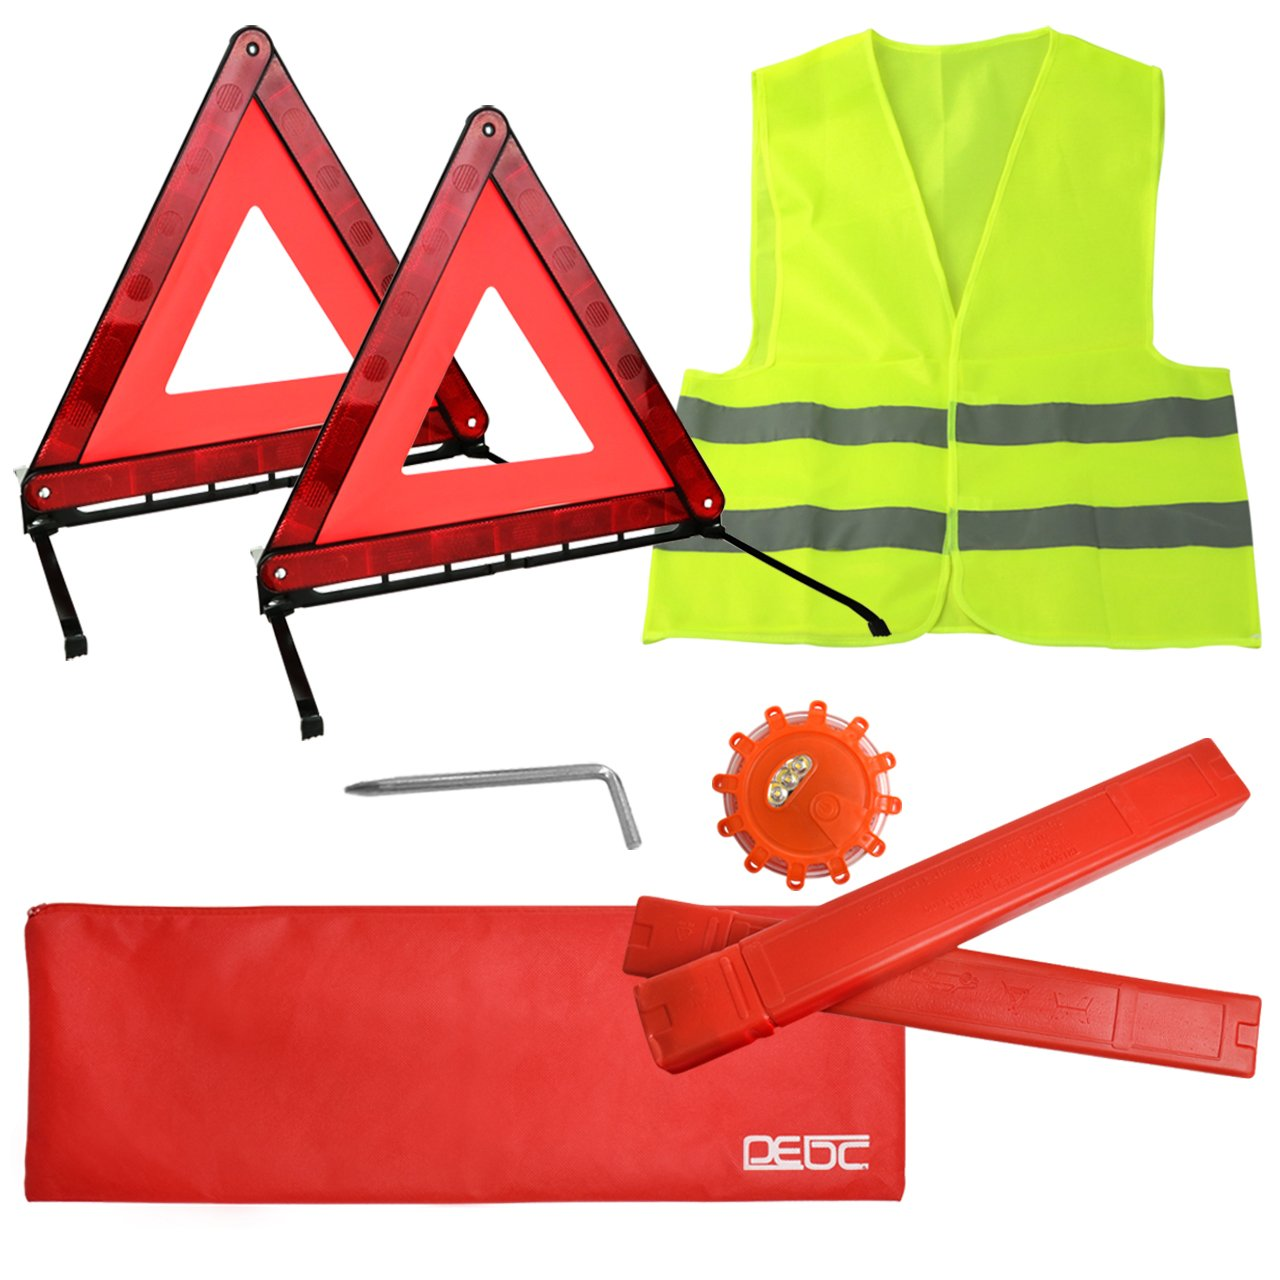 DEDC 4 Packs Roadside Assistance Kit Set with Storage Bag - 2 x Foldable Emergency Triangles + Dual-Color Emergency Light + Reflective Safety Vest Safety Gear & Hazard Warning Triangle